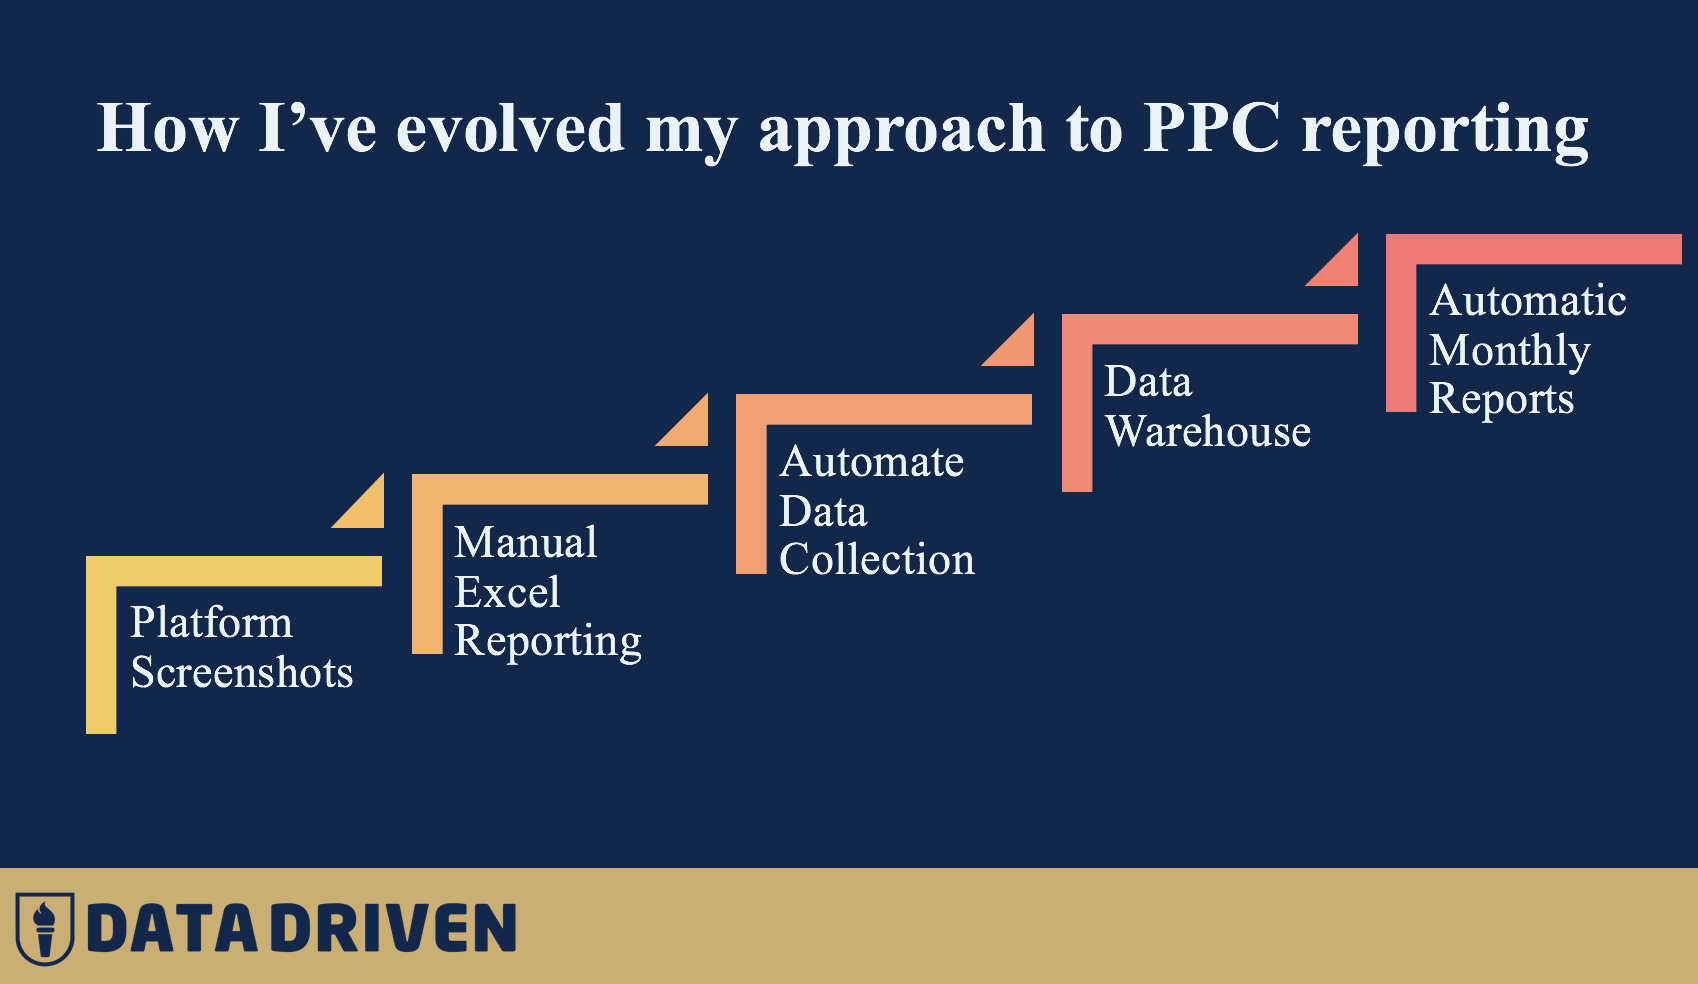 PPC Reporting Evolution